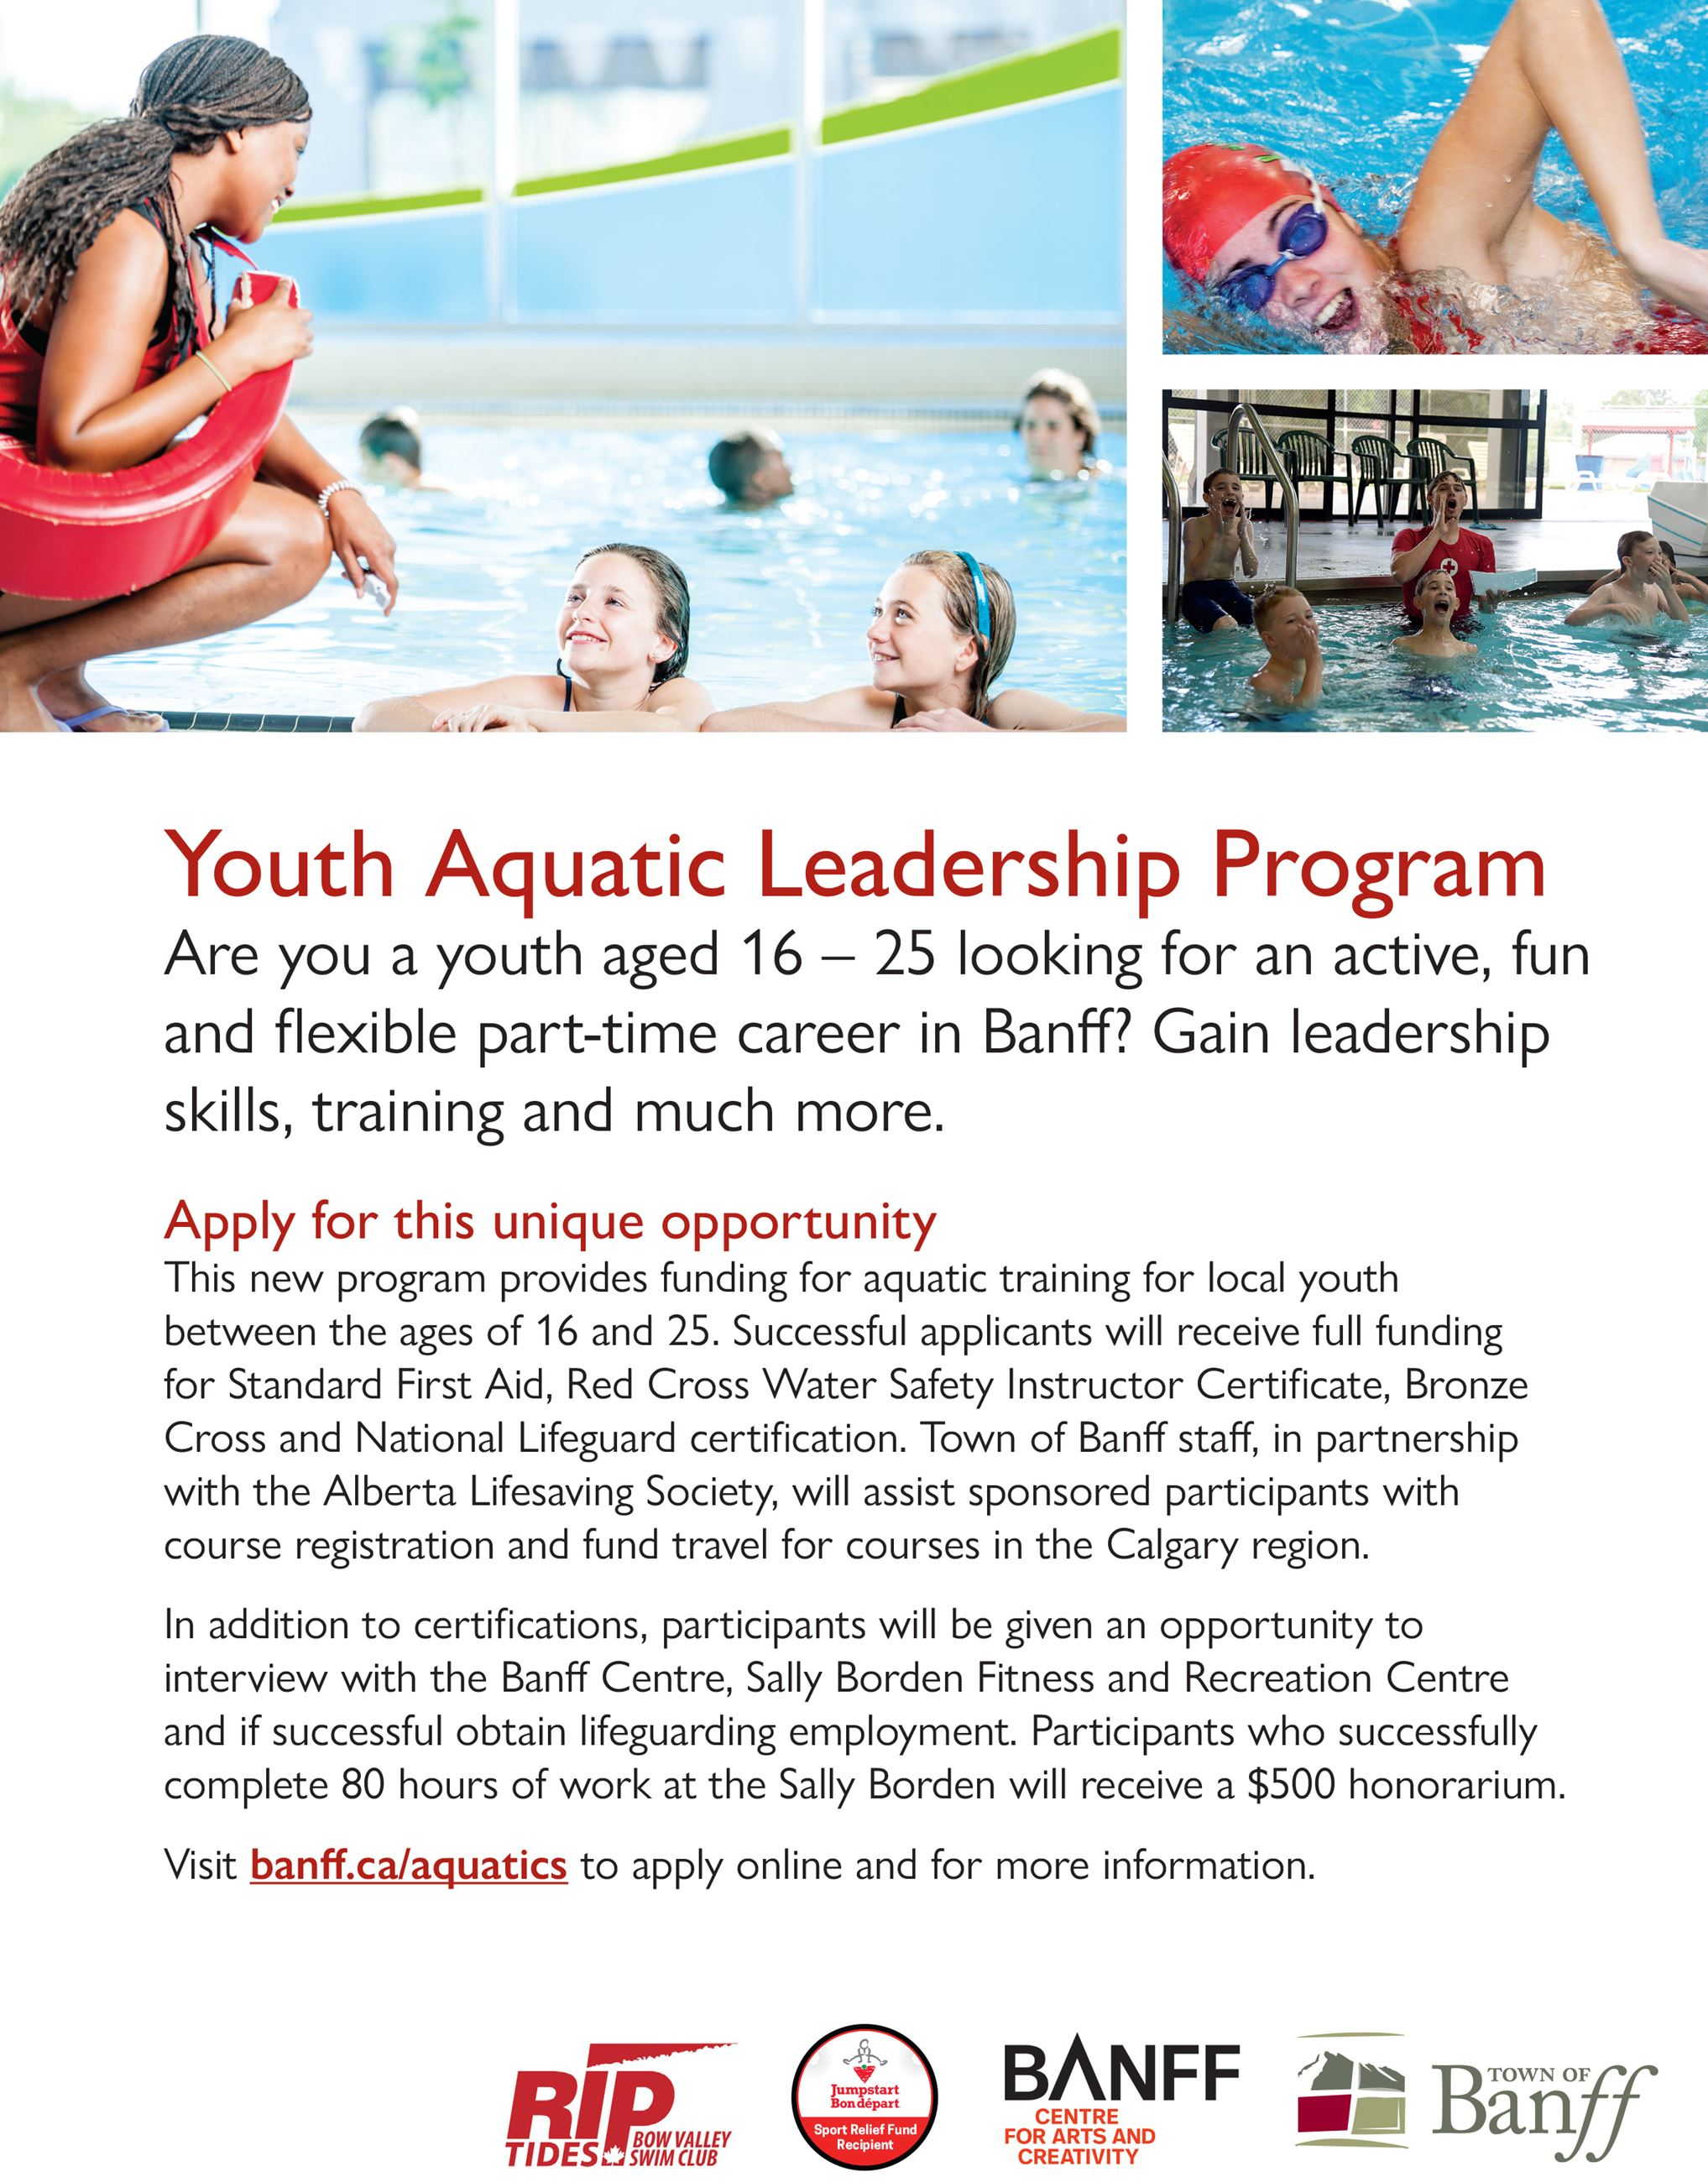 Youth Aquatic Leadership Program